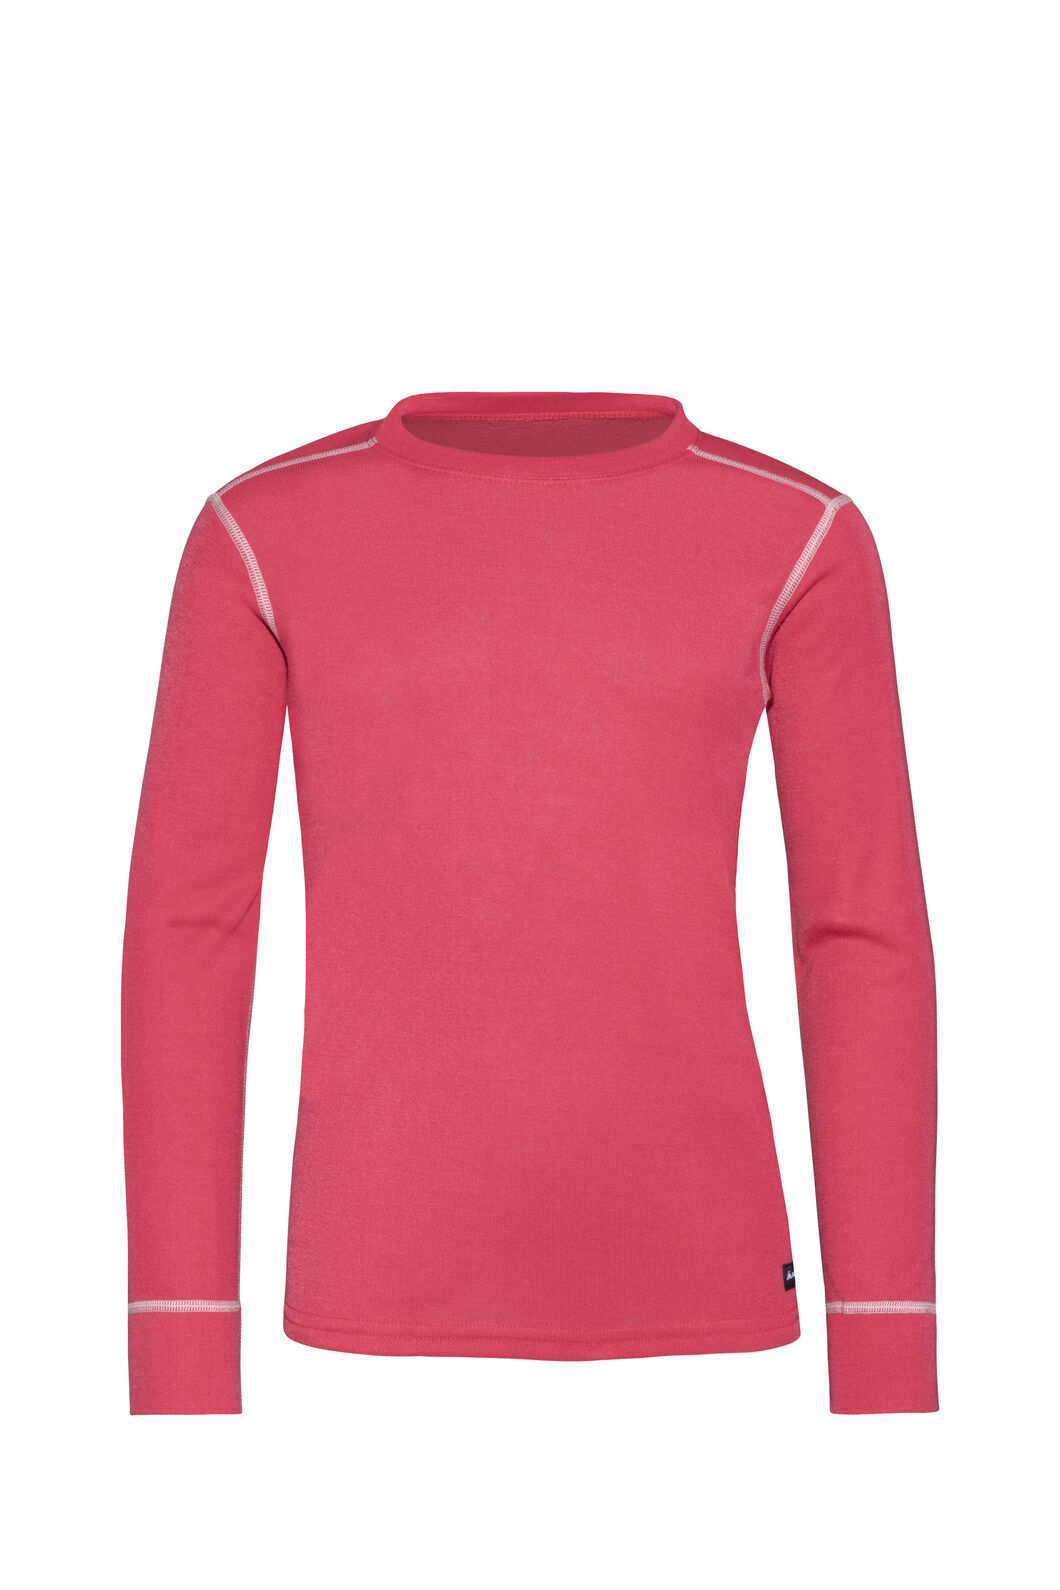 Macpac Geothermal Long Sleeve Top - Kids', Rouge Red, hi-res